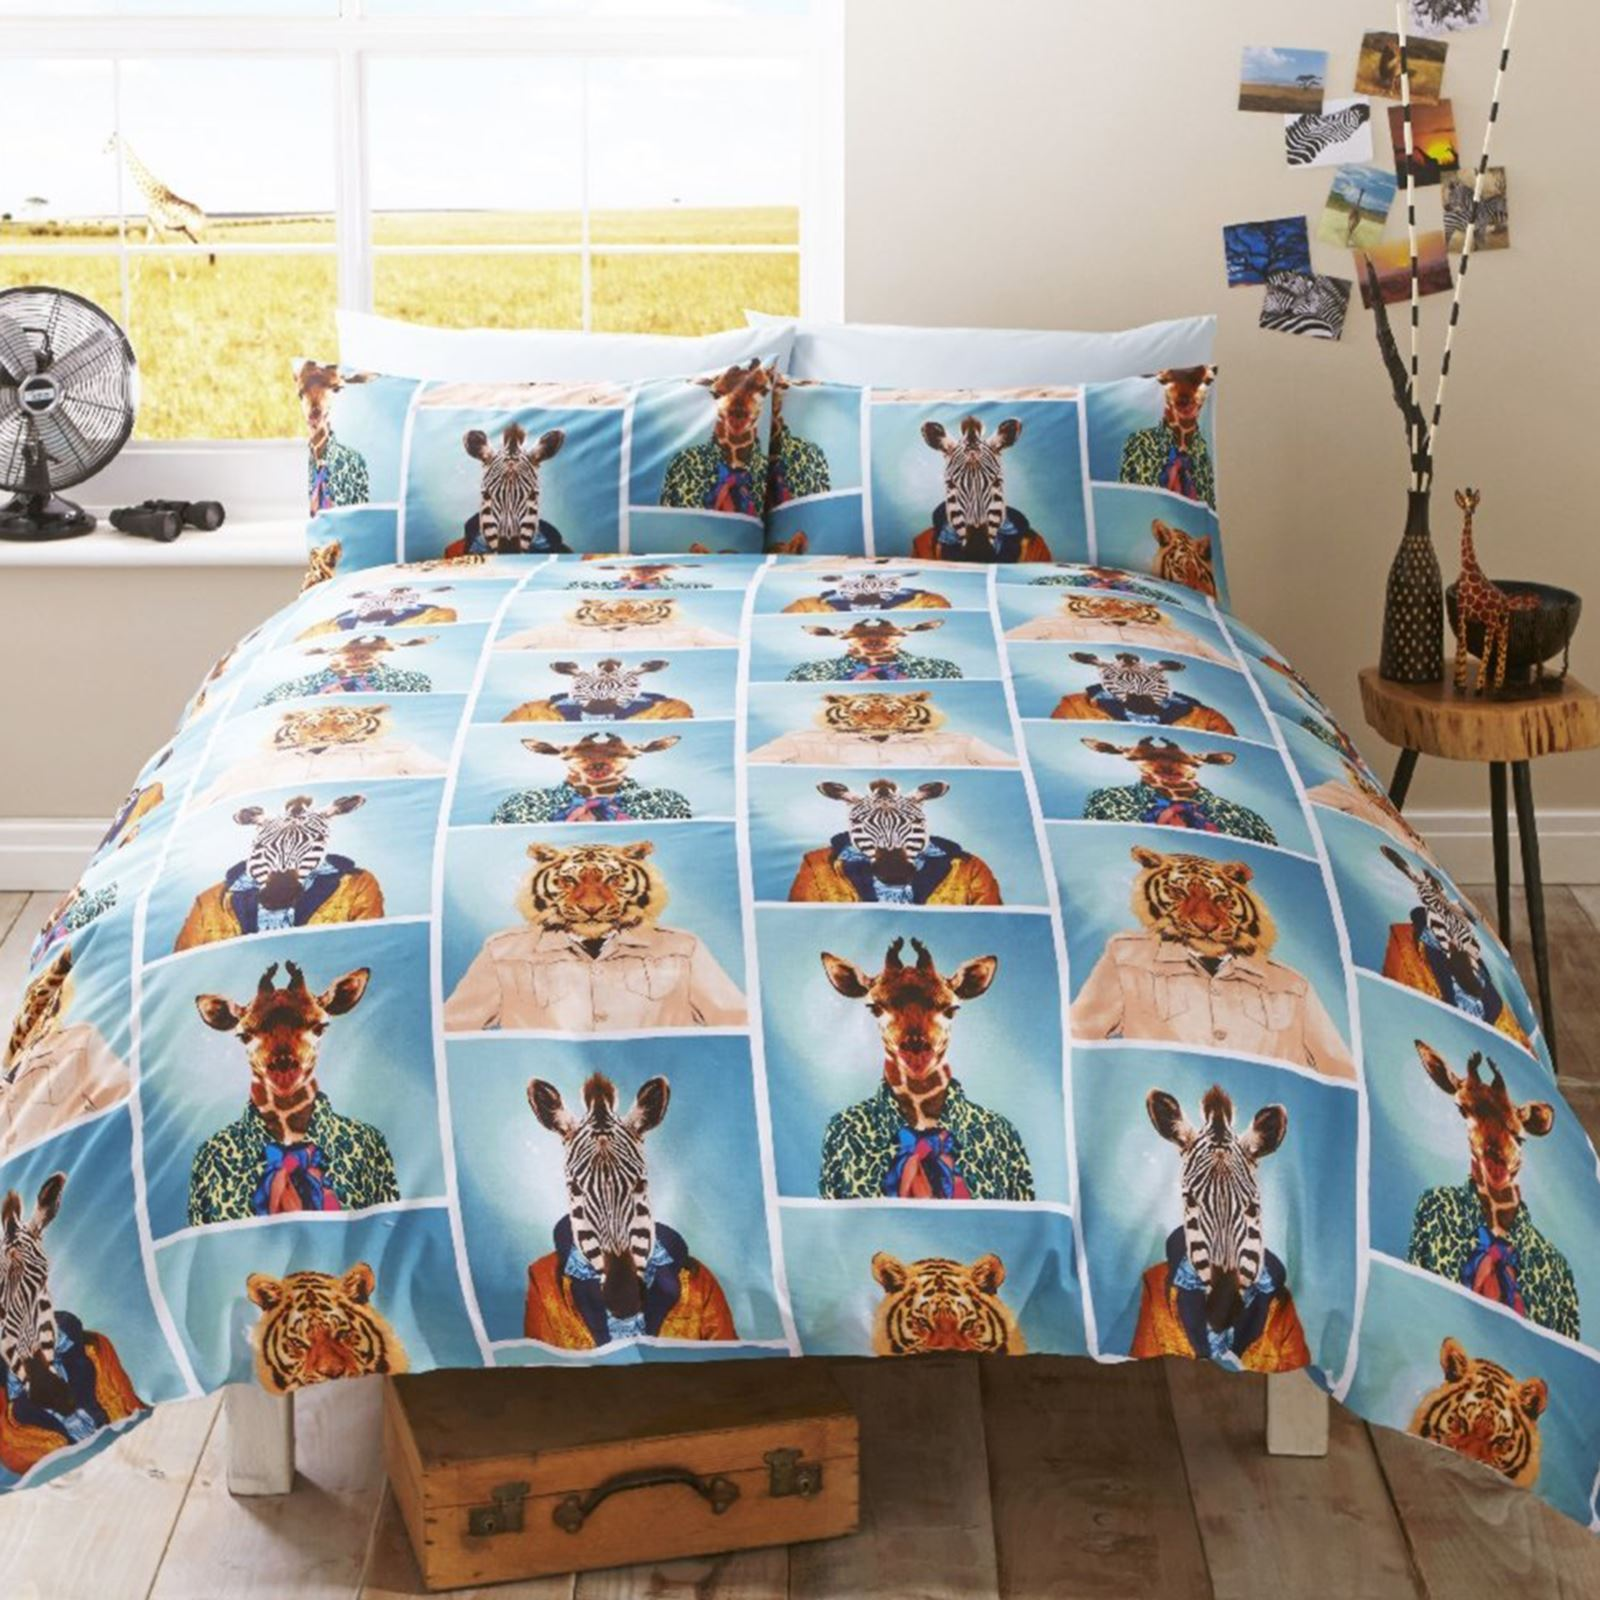 Grappige Dekbedovertrekken Fun Animal Single Duvet Covers Dogs Elephant Giraffe